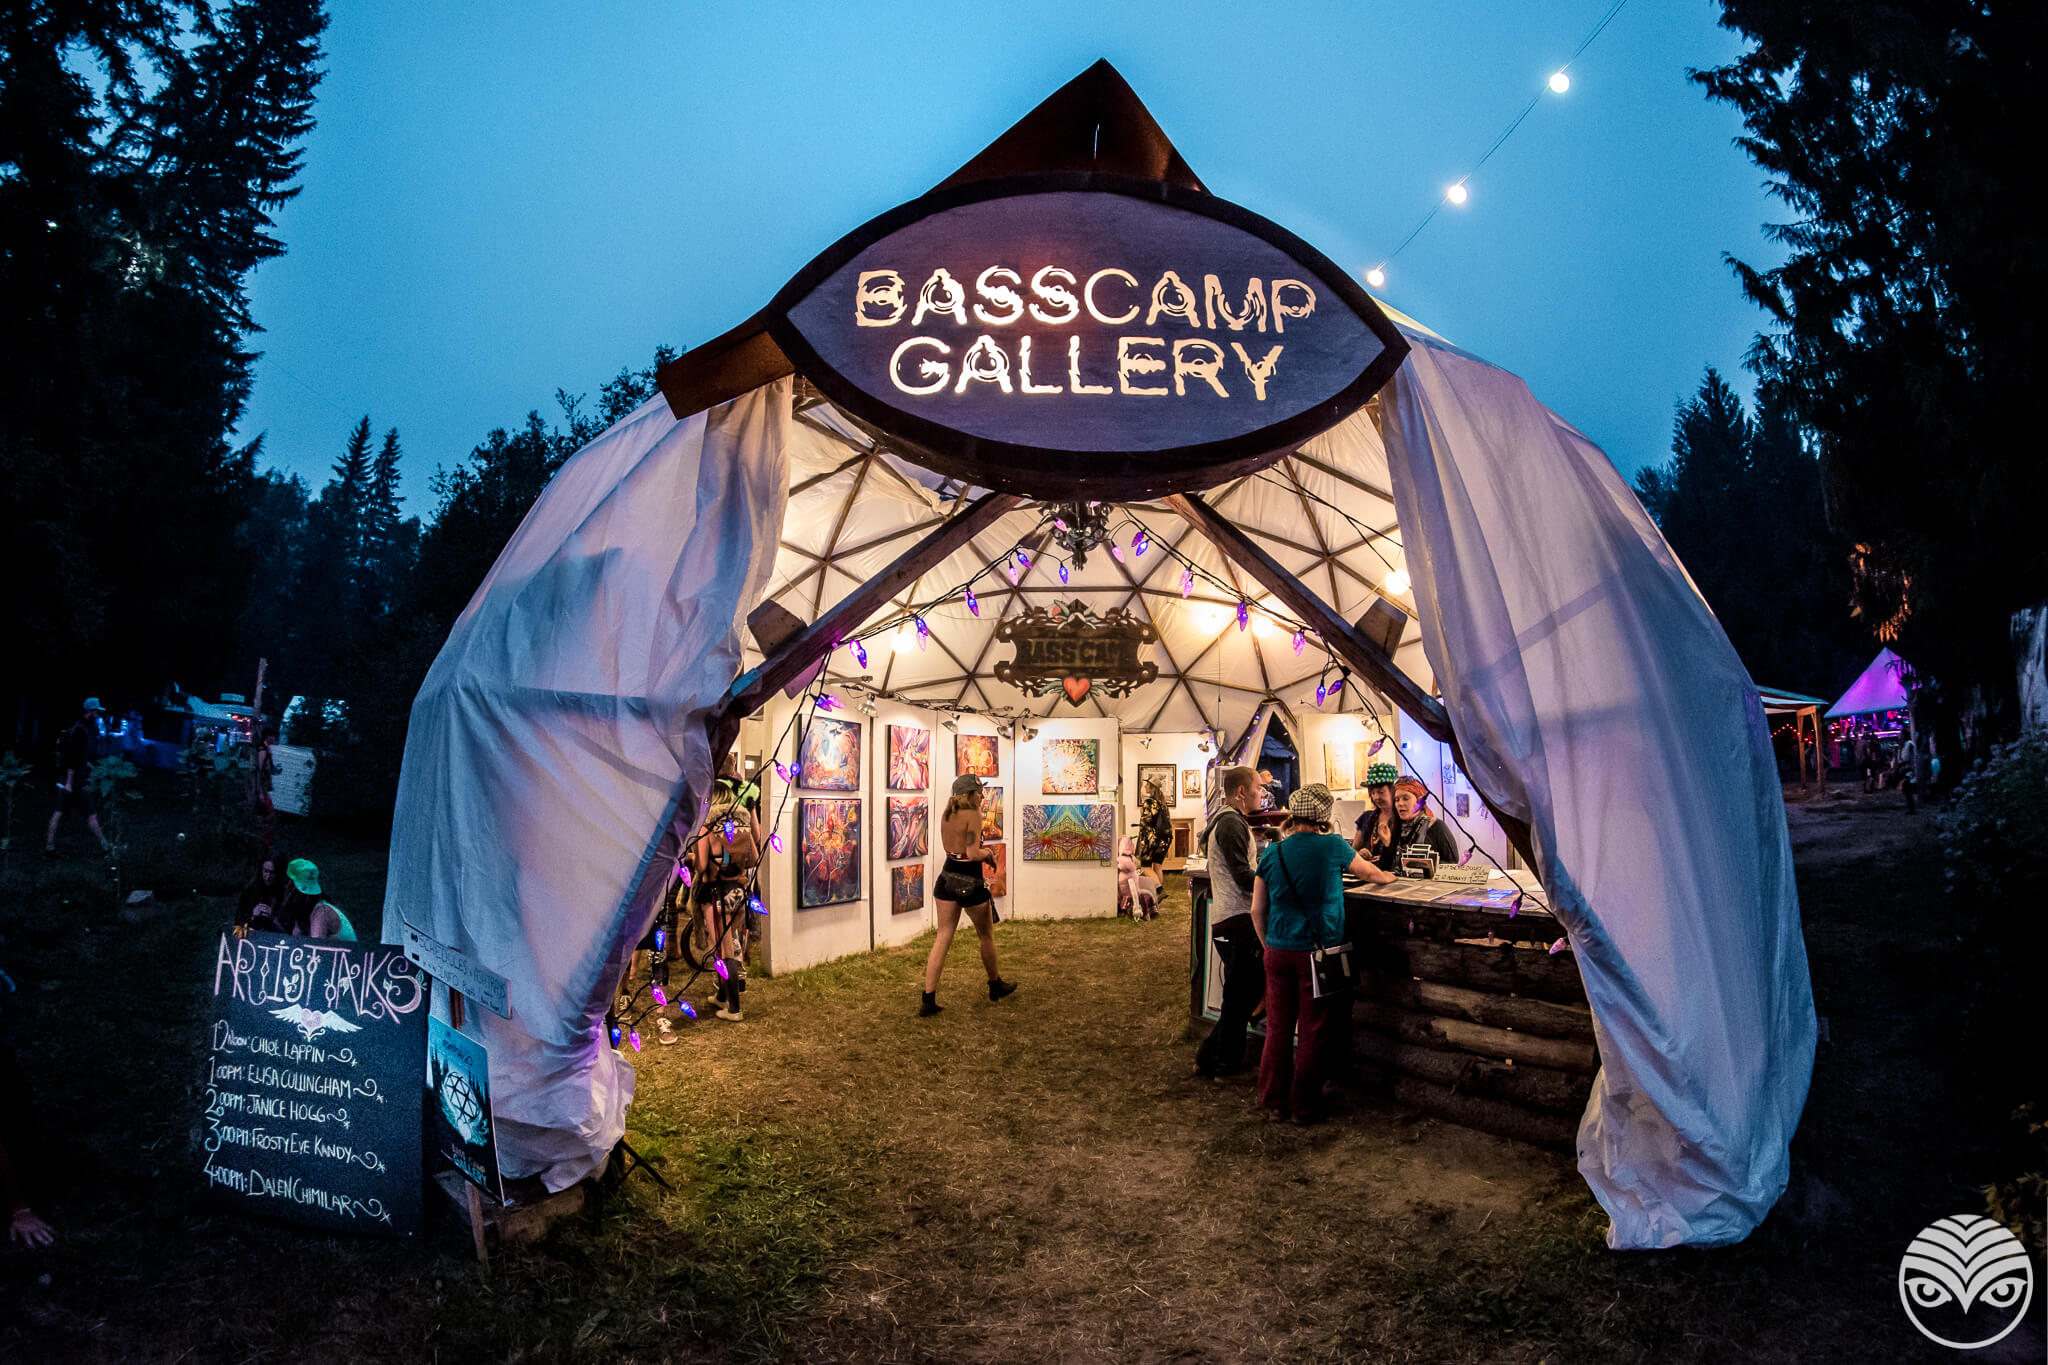 BASScamp Art Gallery